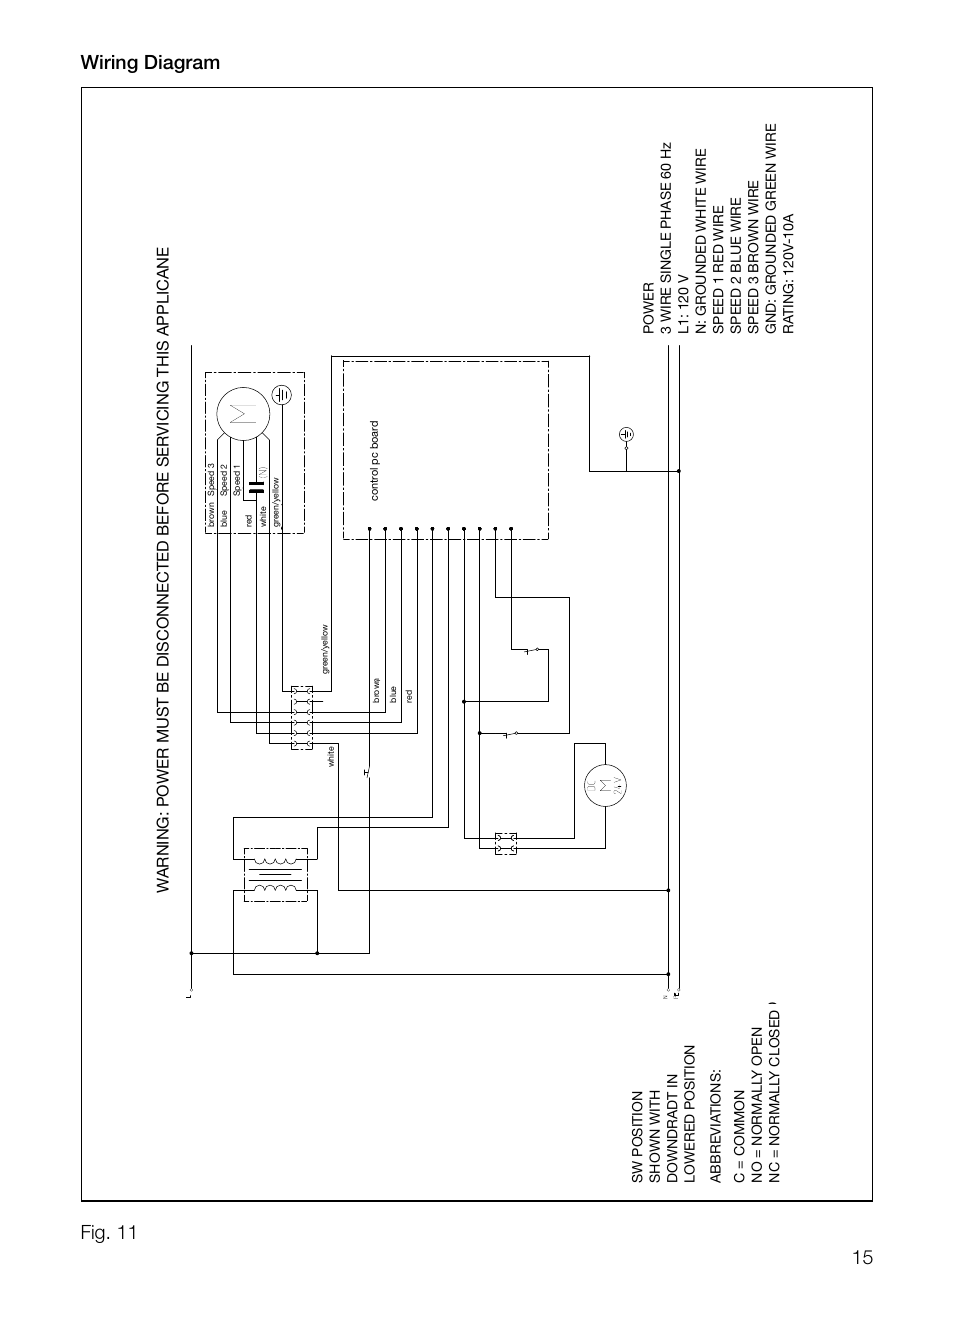 hight resolution of 11 15 bosch dhd model user manual page 15 48